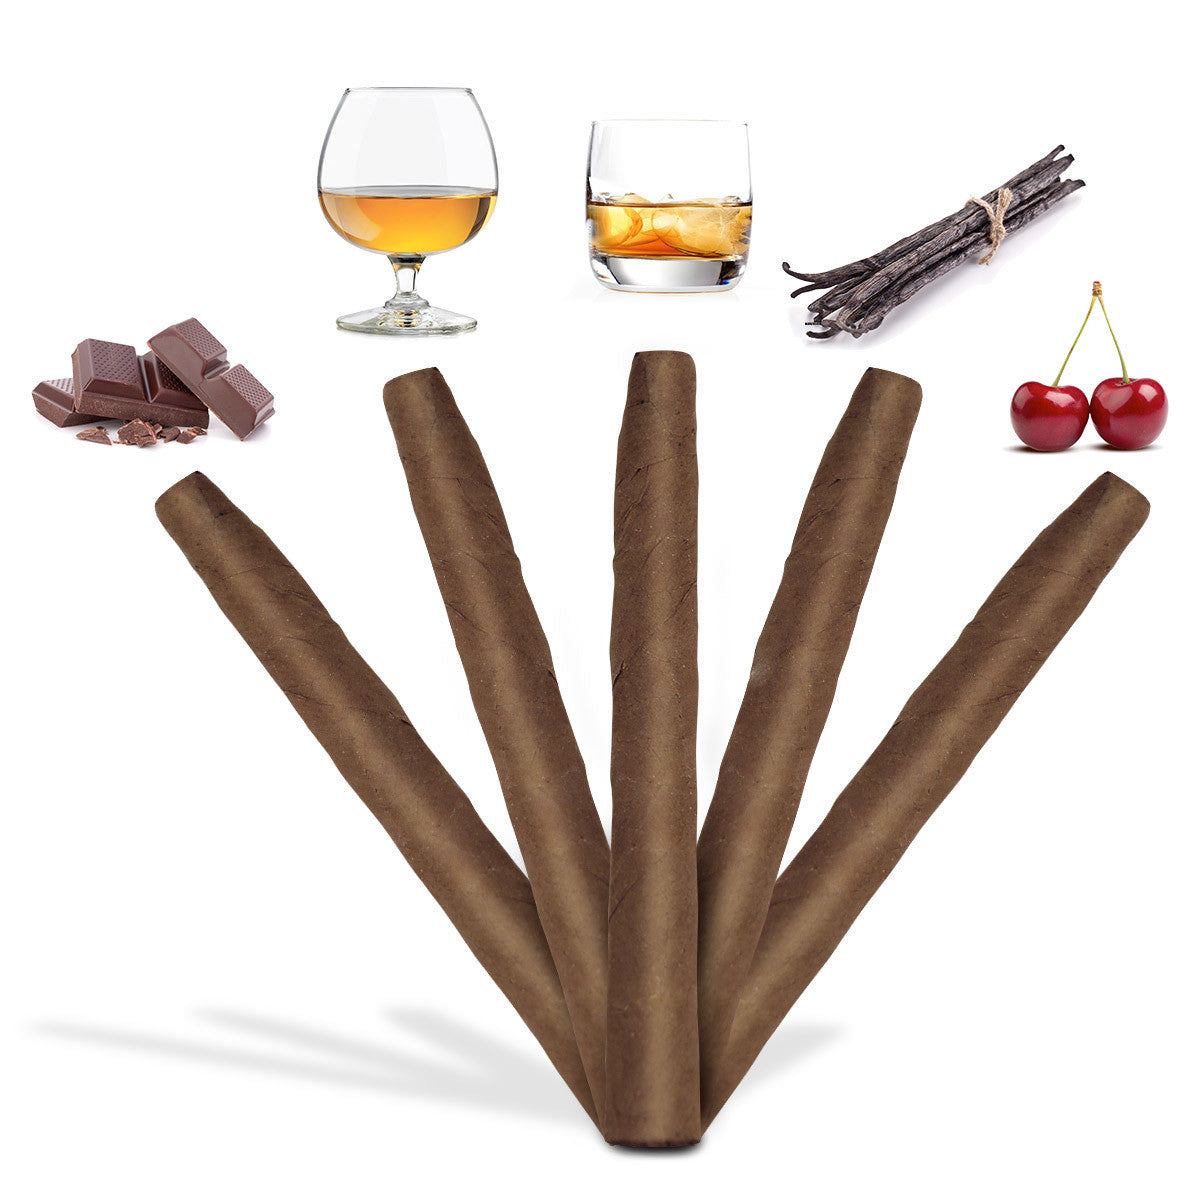 5 Cigars Sampler Flavored Mini 4 x 26 - Cigar boulevard